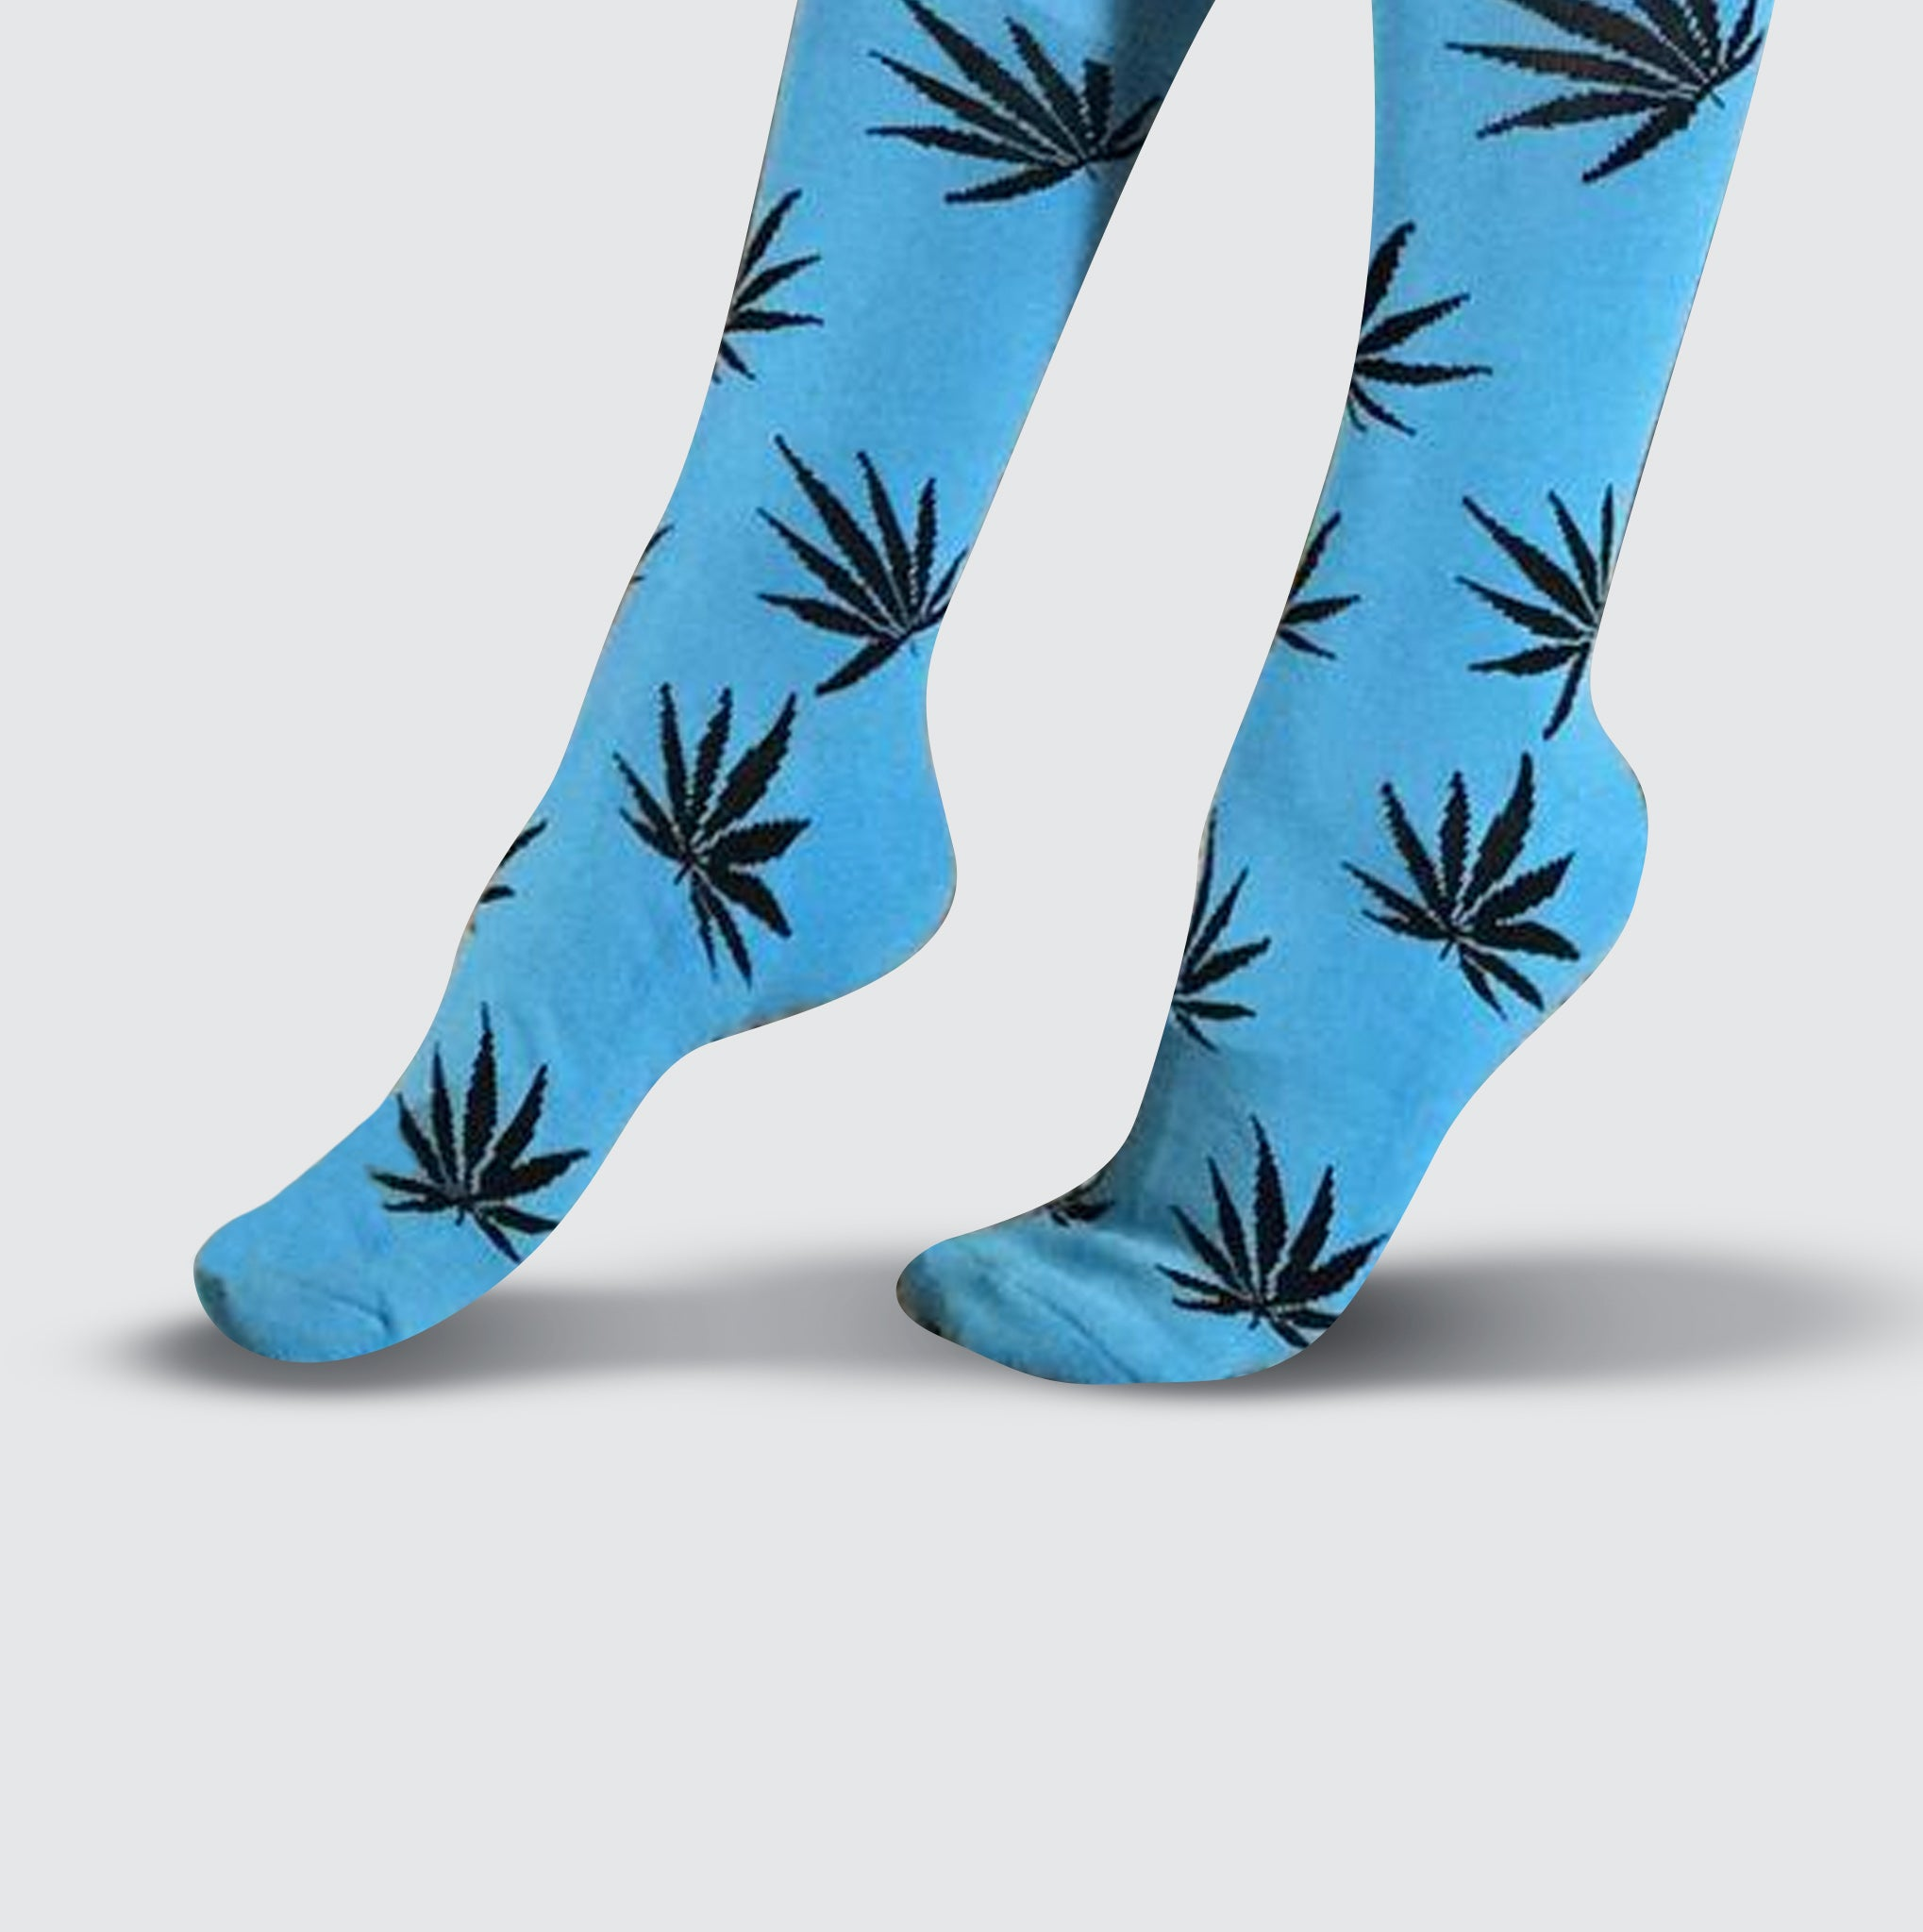 Leaf Socks - Blue/Black